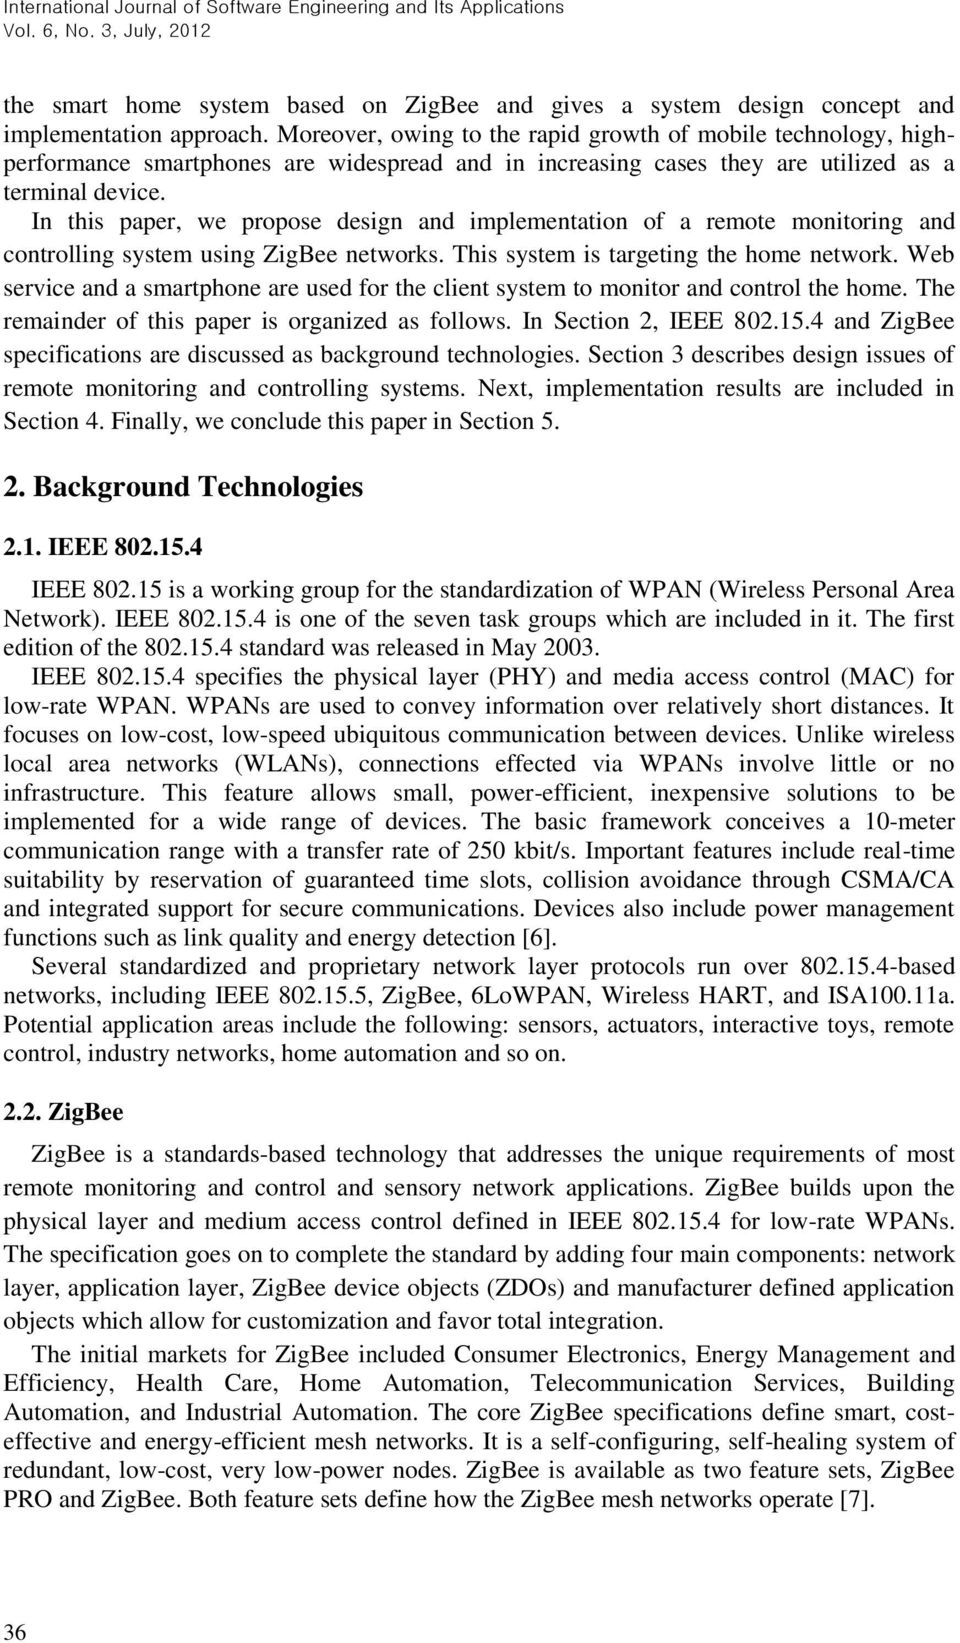 In this paper, we propose design and implementation of a remote monitoring and controlling system using ZigBee networks. This system is targeting the home network.